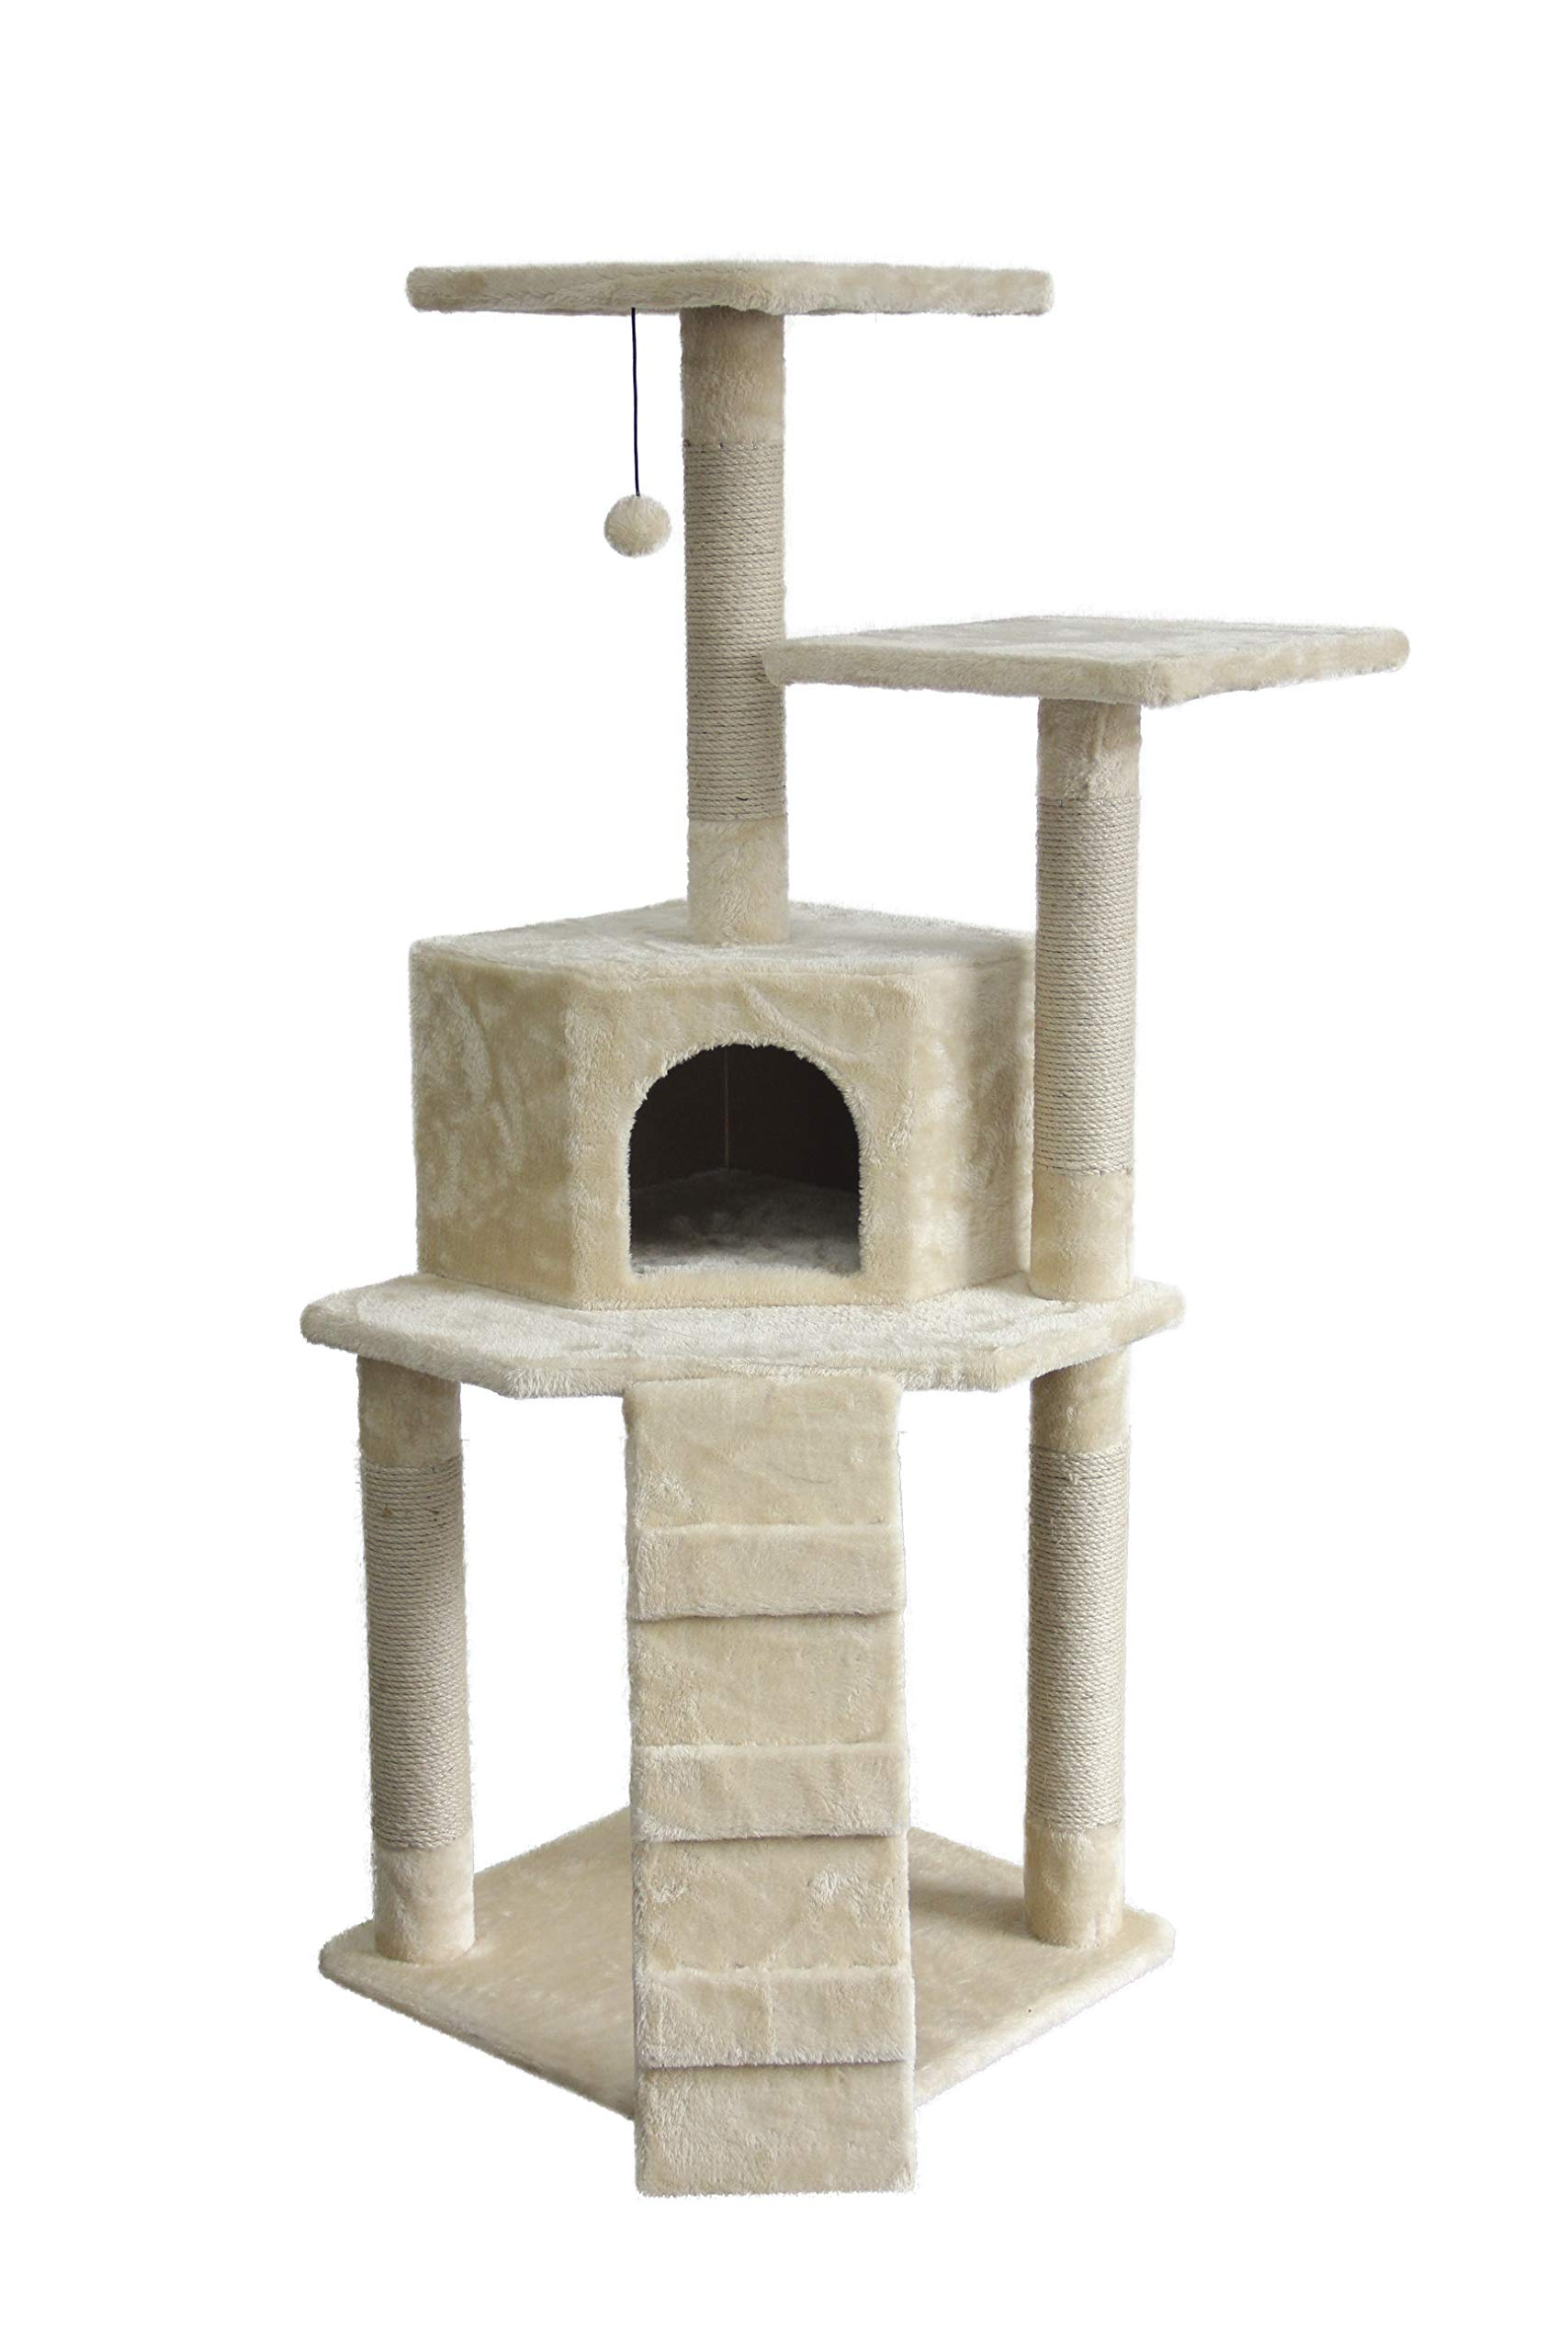 AmazonBasics Small Cat Tree Tower with Cave And Scratching Post - Beige by AmazonBasics